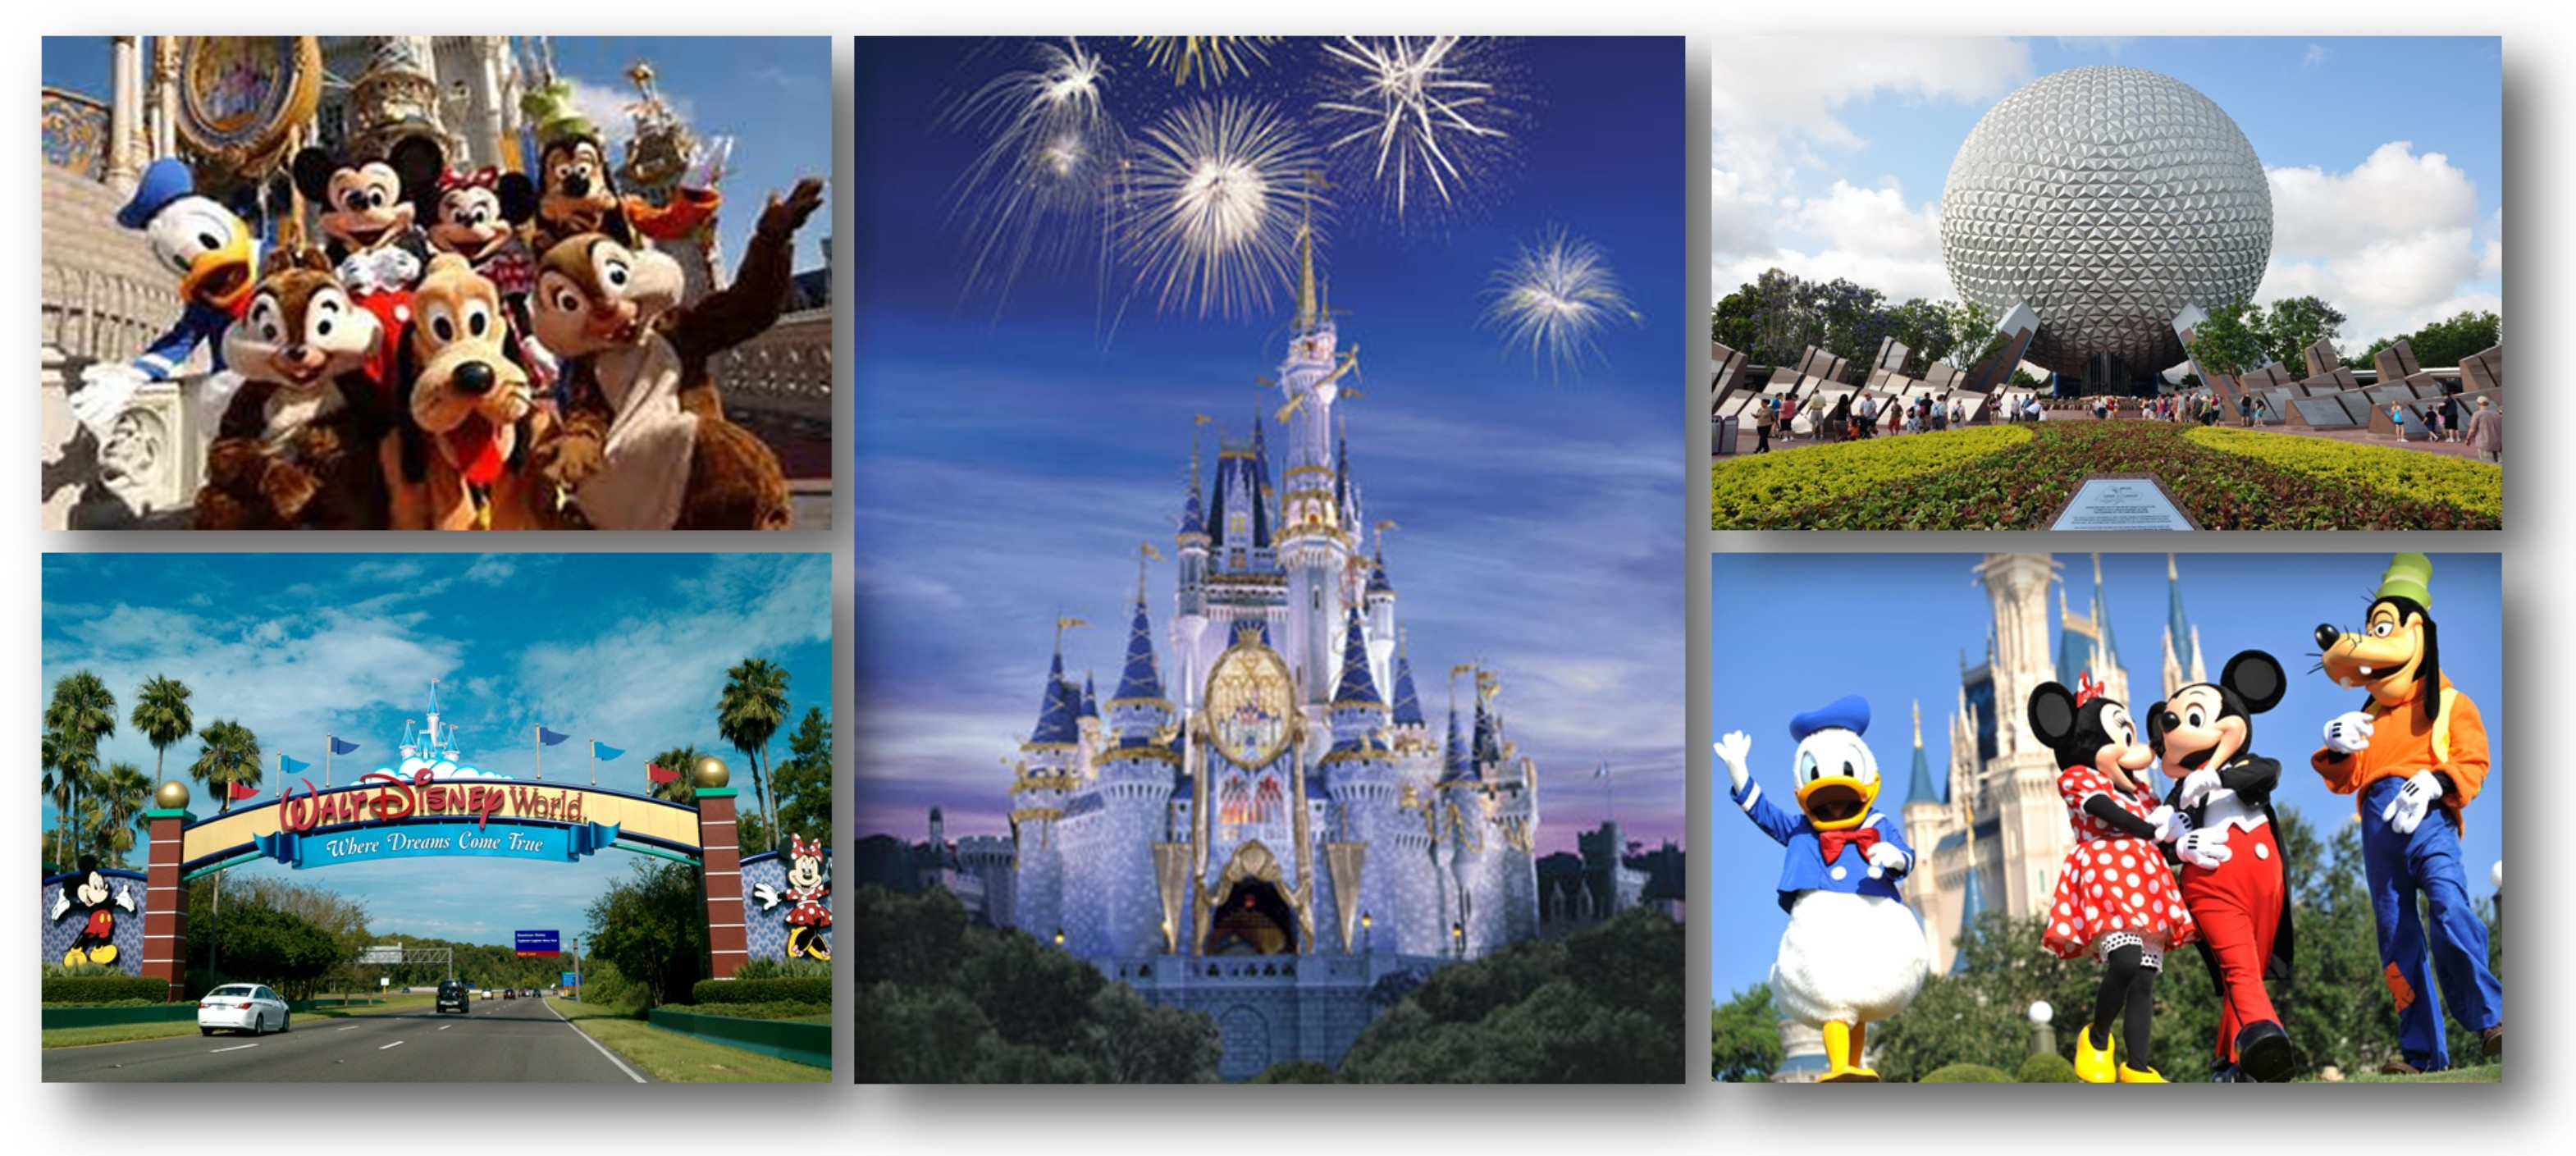 Search for homes for sale near Disney World Florida Frontline